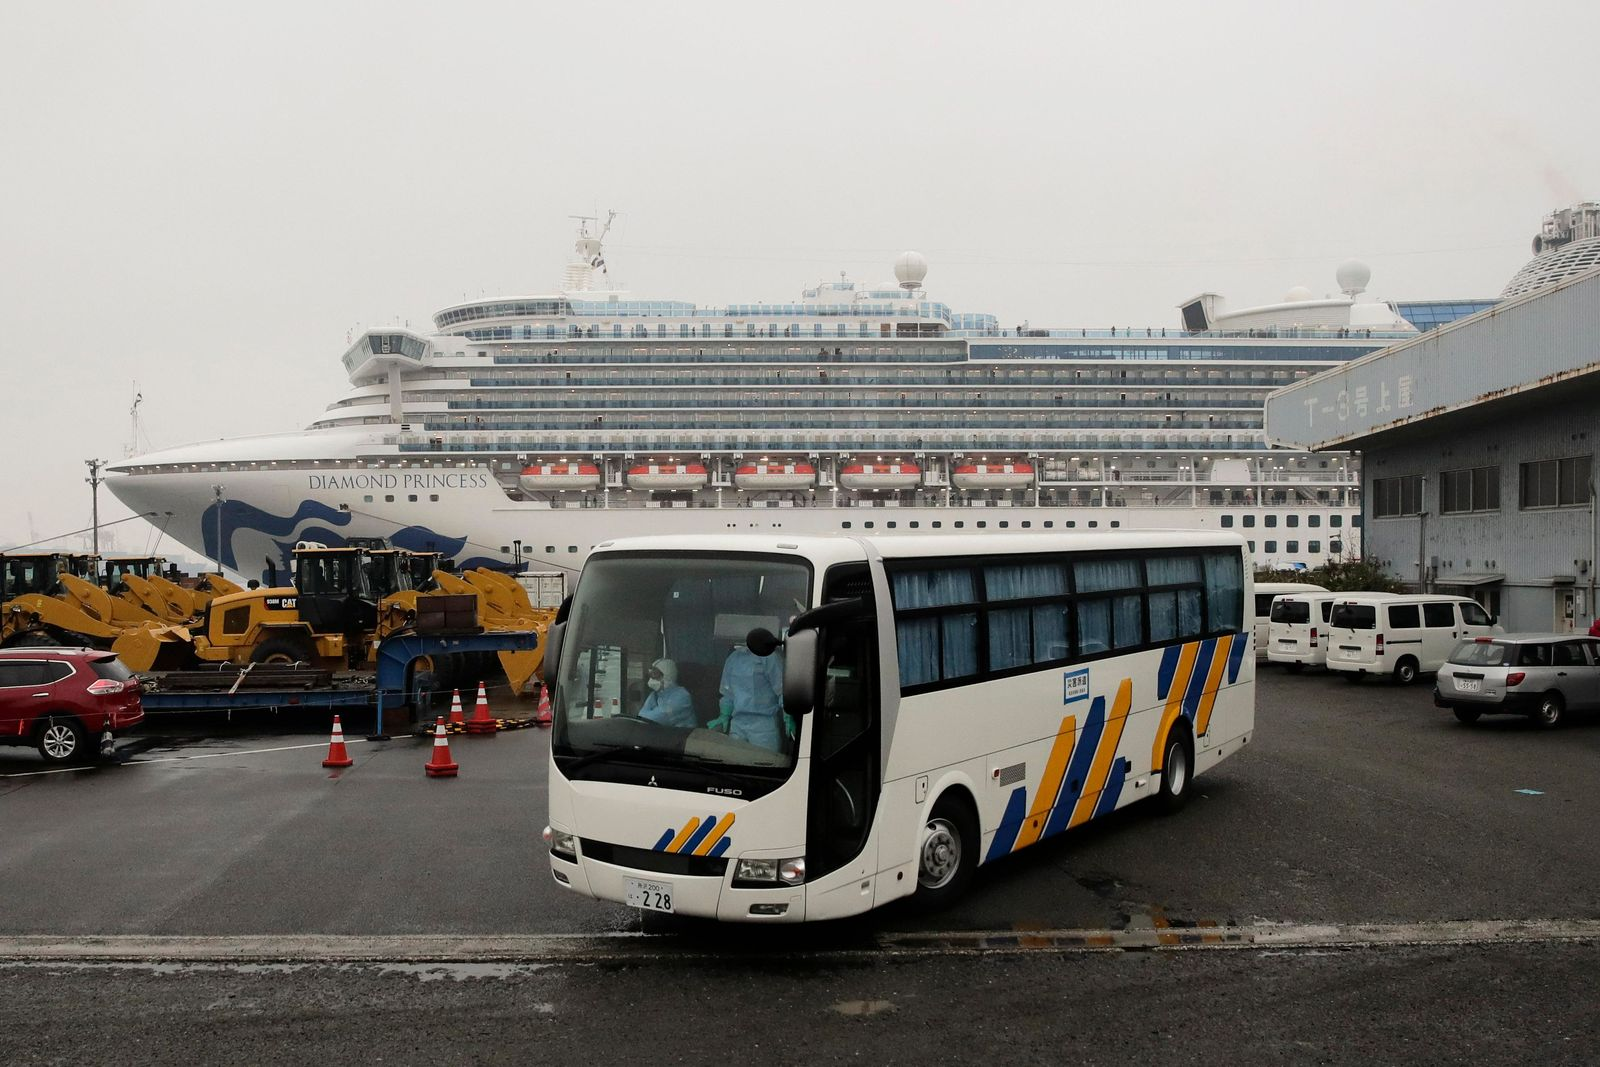 A bus leaves the quarantined Diamond Princess cruise ship at a port Sunday, Feb. 16, 2020, in Yokohama, near Tokyo. The U.S. says Americans aboard a quarantined ship will be flown back home on a chartered flight Sunday, but that they will face another two-week quarantine. (AP Photo/Jae C. Hong)